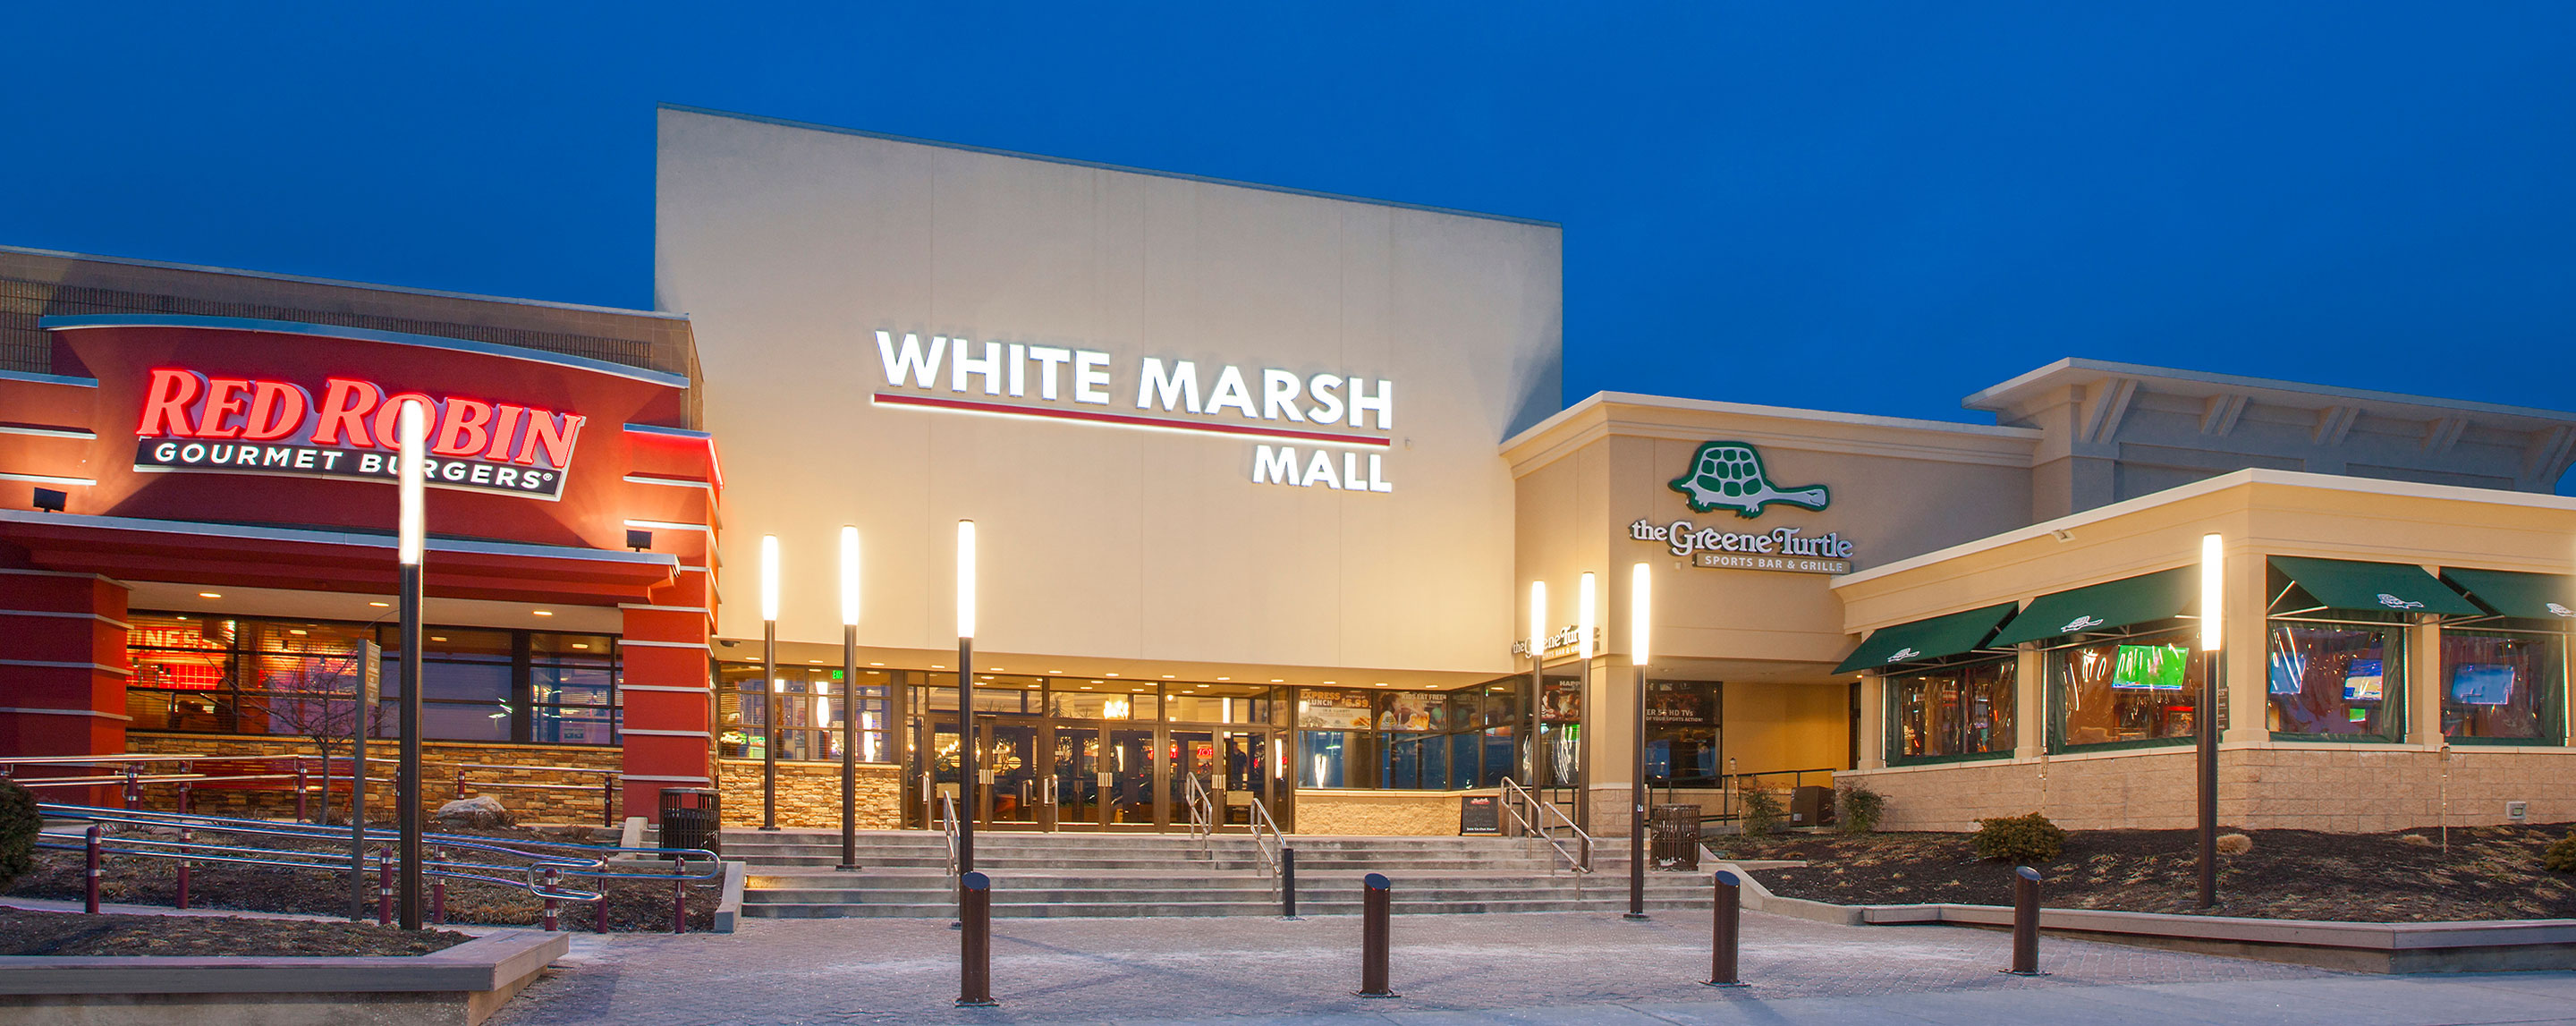 At night, the White Marsh Mall entrance and surrounding landscape is brightly lit by decorative lamp posts.